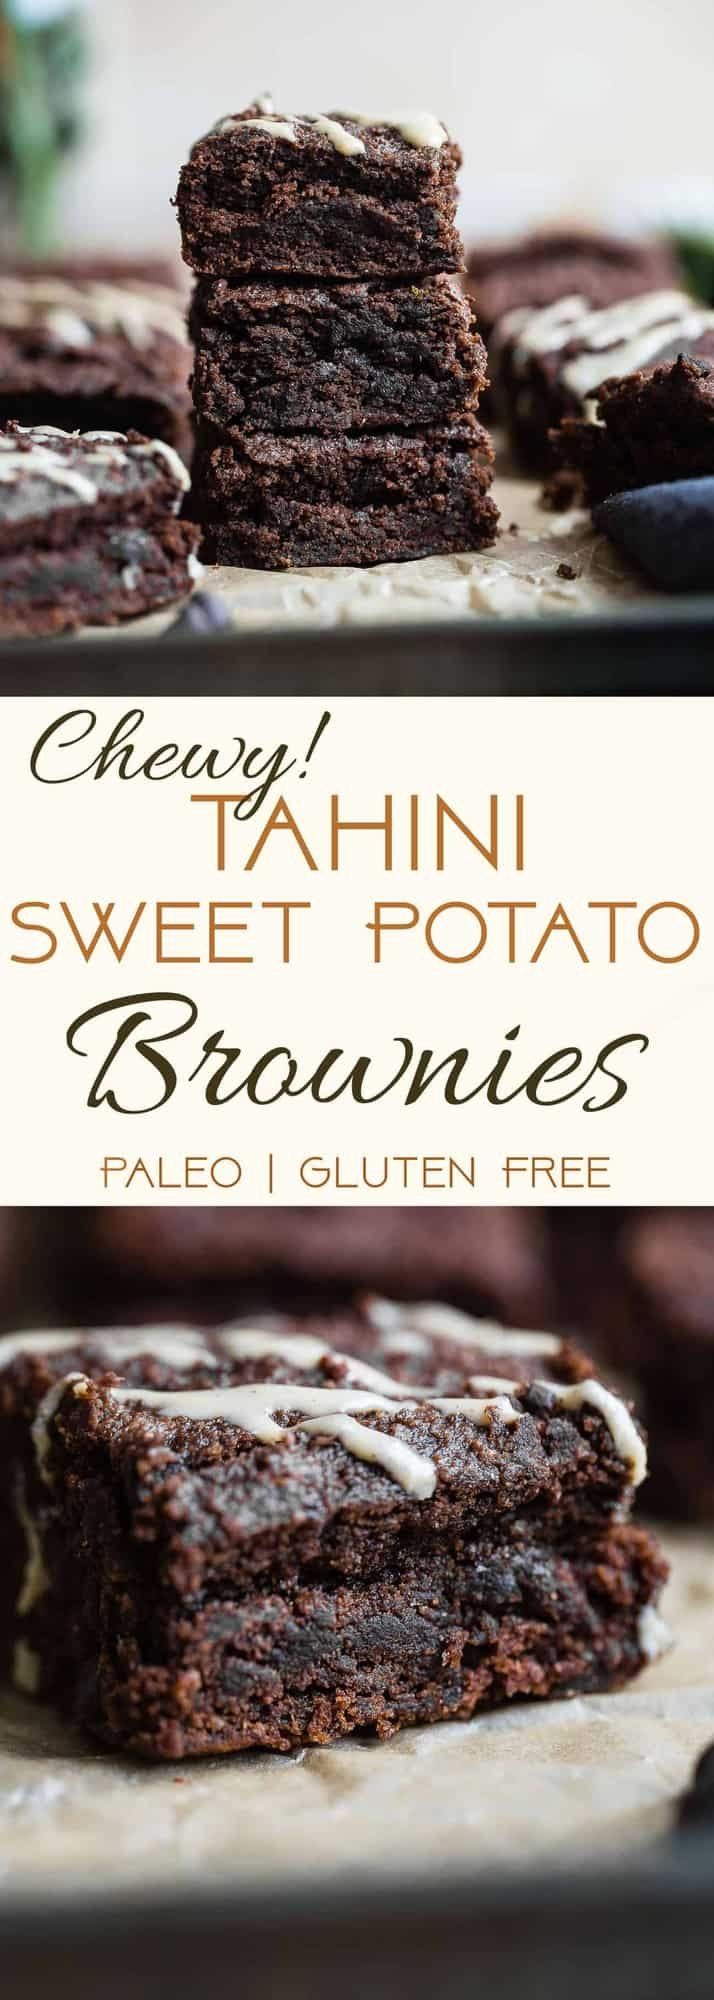 Paleo Sweet Potato Brownies - These healthy brownies areSO dense, chewy and moist! No one will believe they use sweet potato and are gluten/grain/dairy and refined sugar free! | #Foodfaithfitness | #Paleo #Glutenfree #Healthy #Brownies #Grainfree